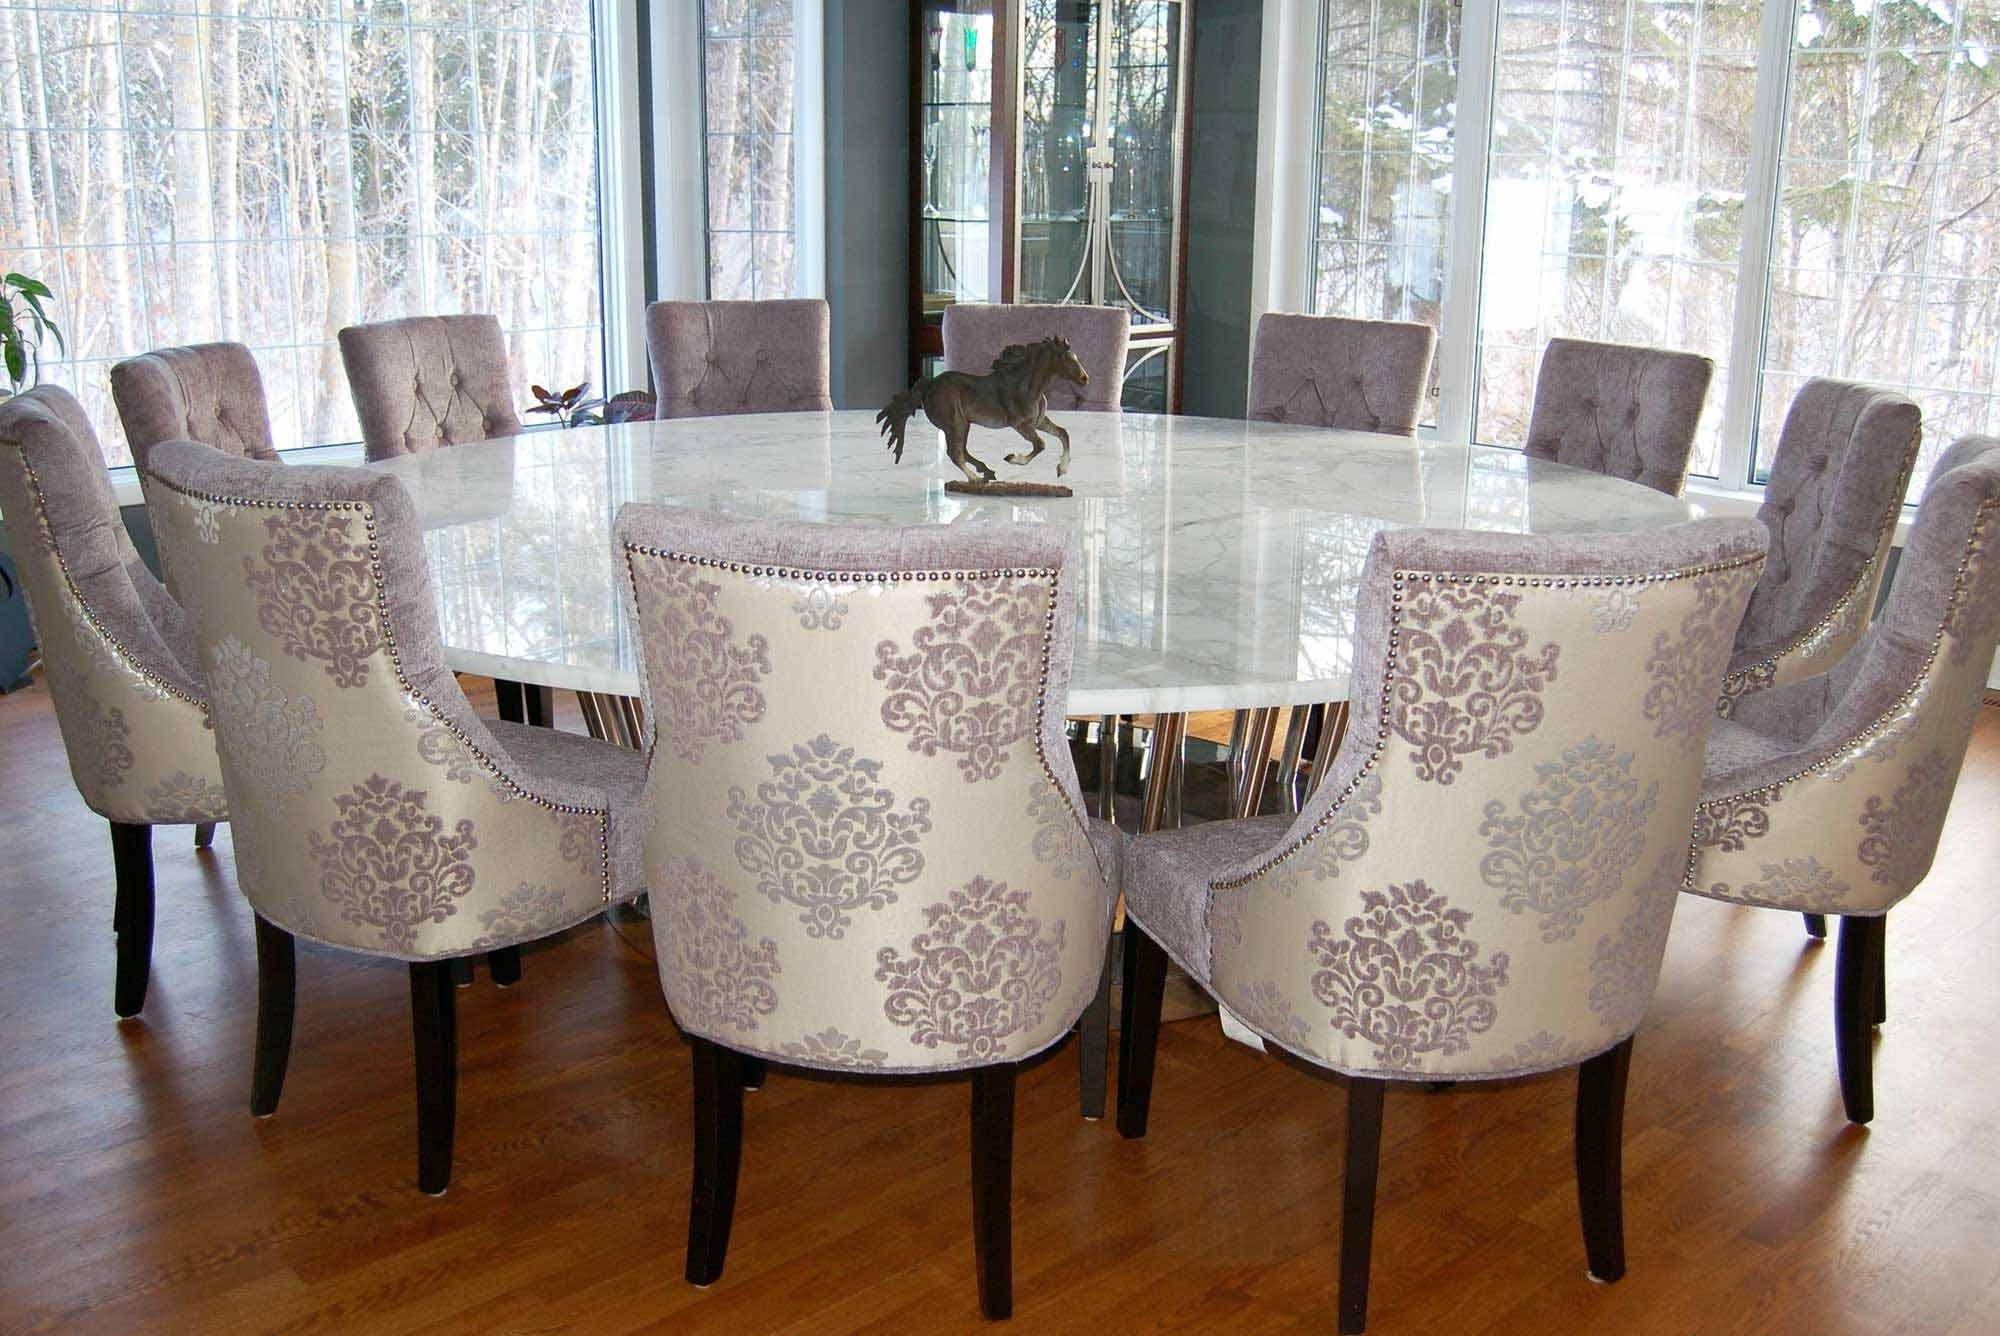 Dining Tables Marvellous Large Round Dining Table Seats 10 Round In Favorite Huge Round Dining Tables (View 7 of 25)